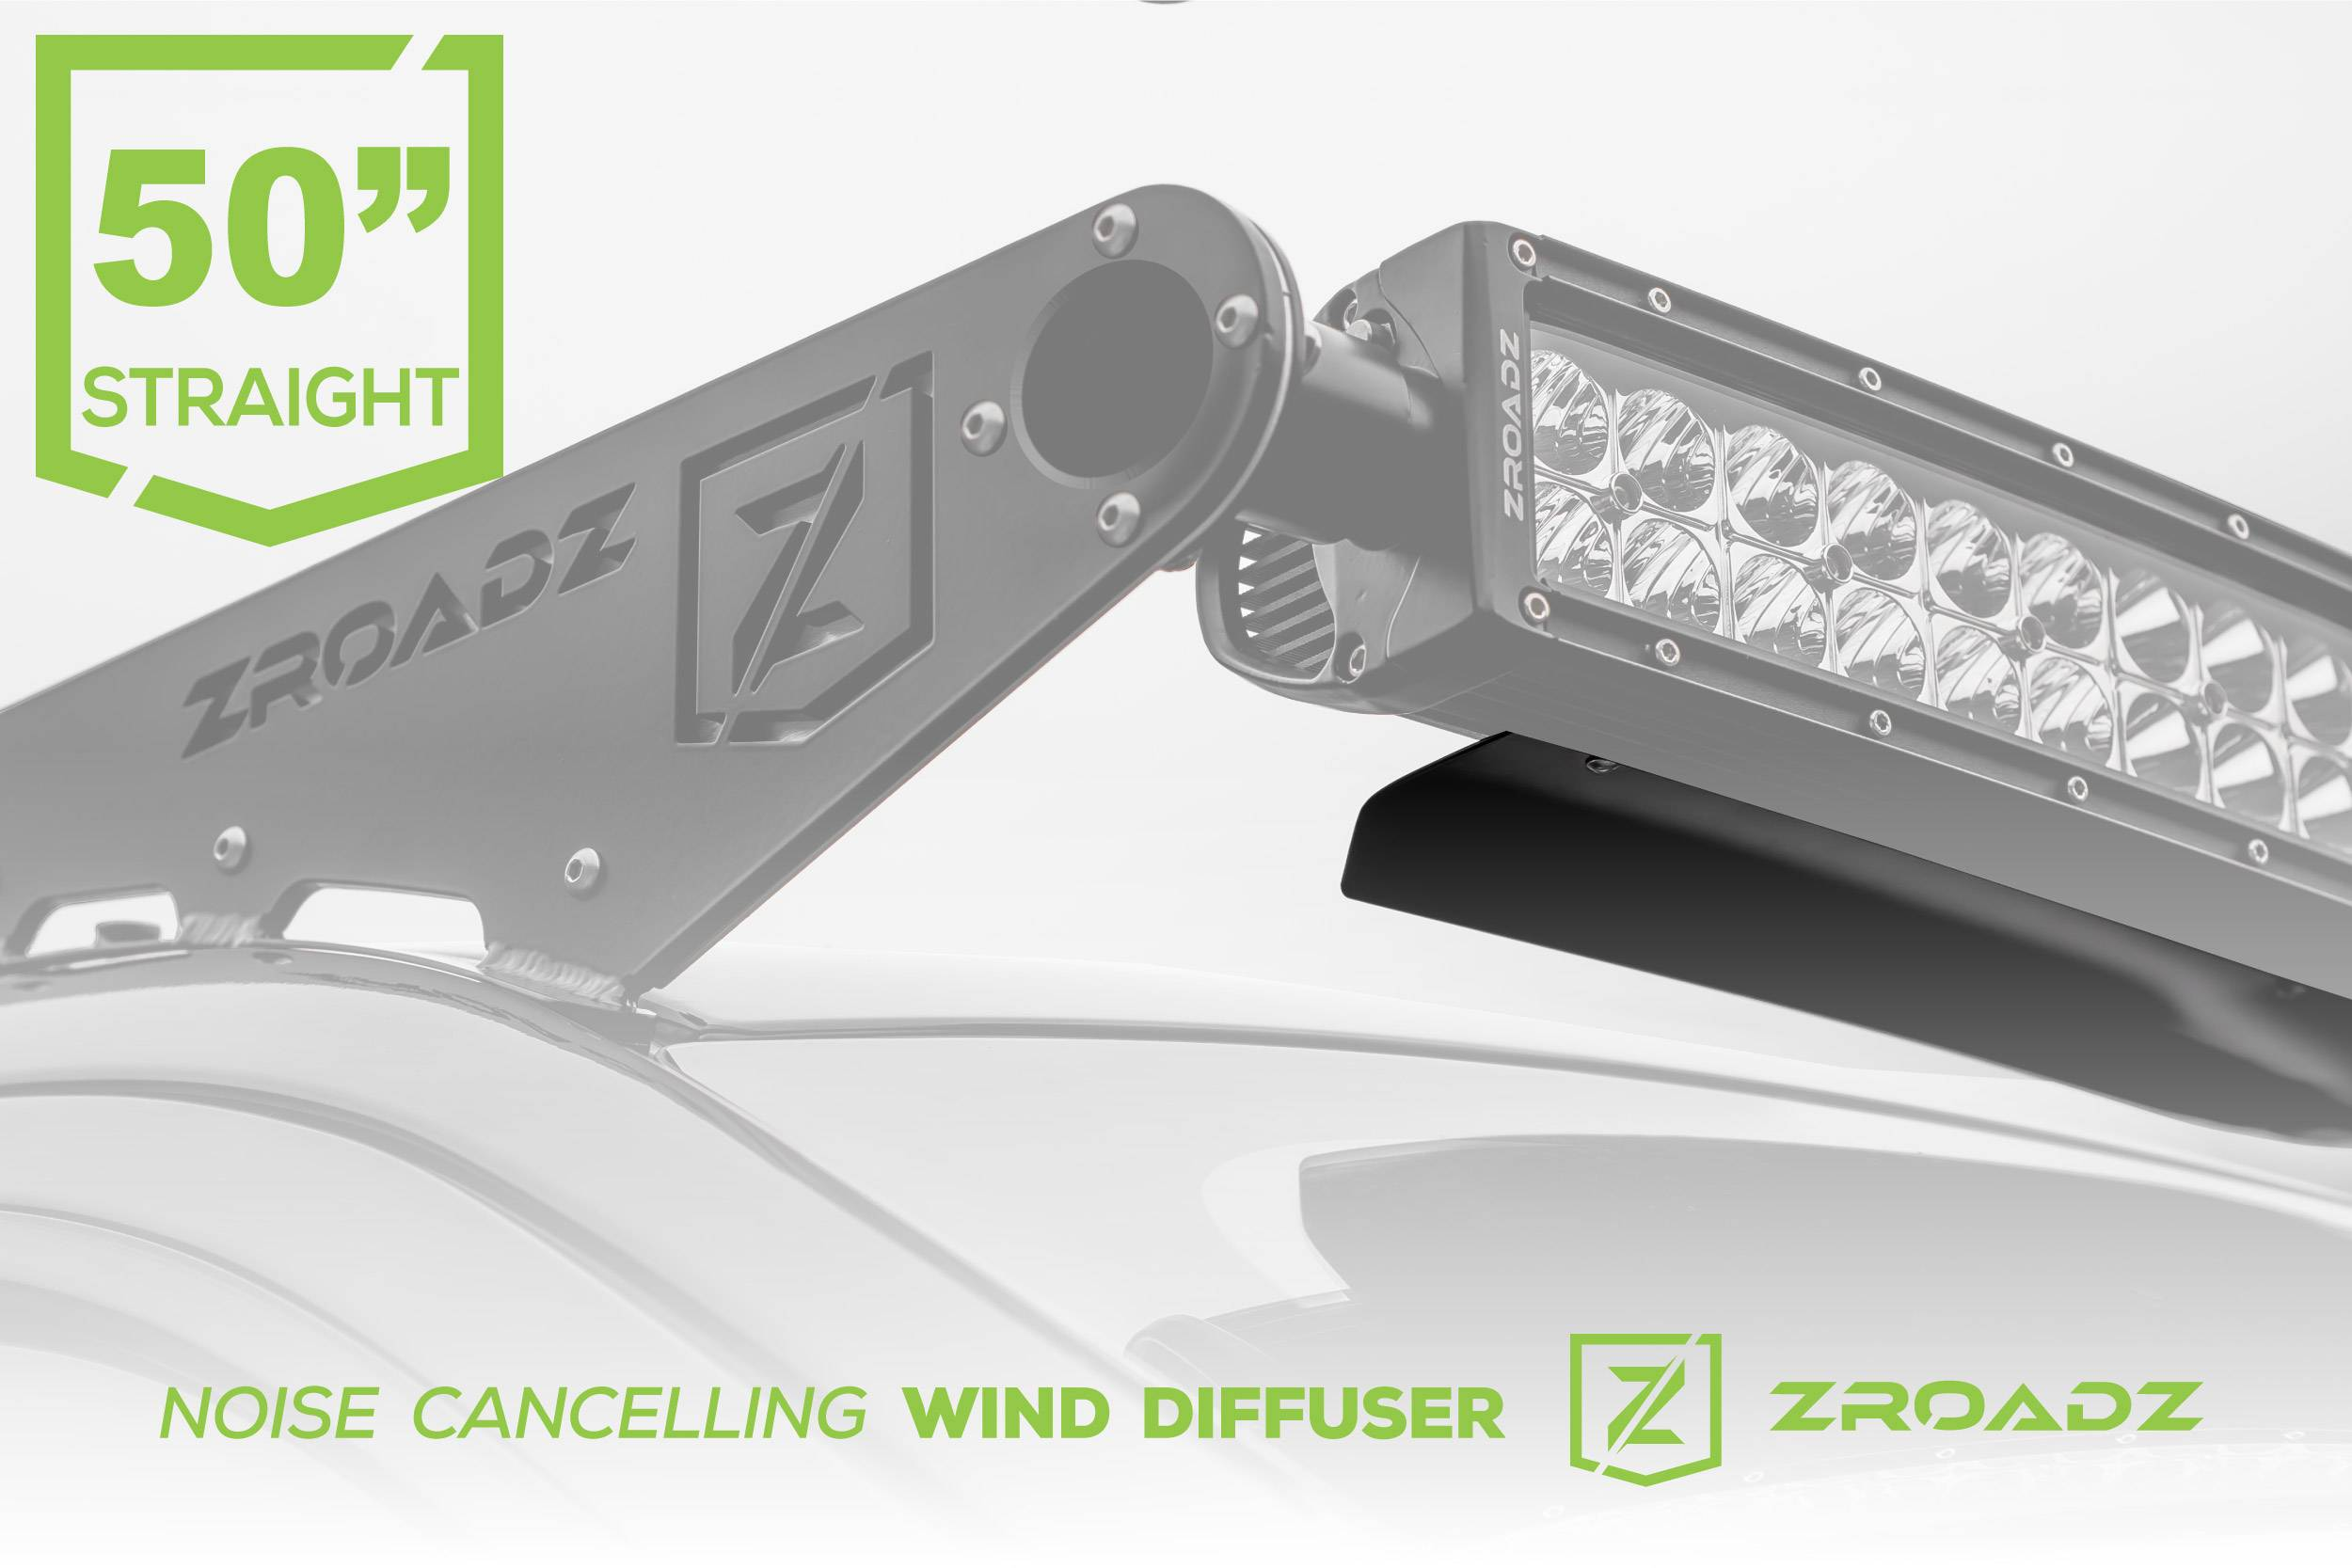 ZROADZ OFF ROAD PRODUCTS Z330050S Noise Cancelling Wind Diffuser for 50 Inch Straight LED Light Bar